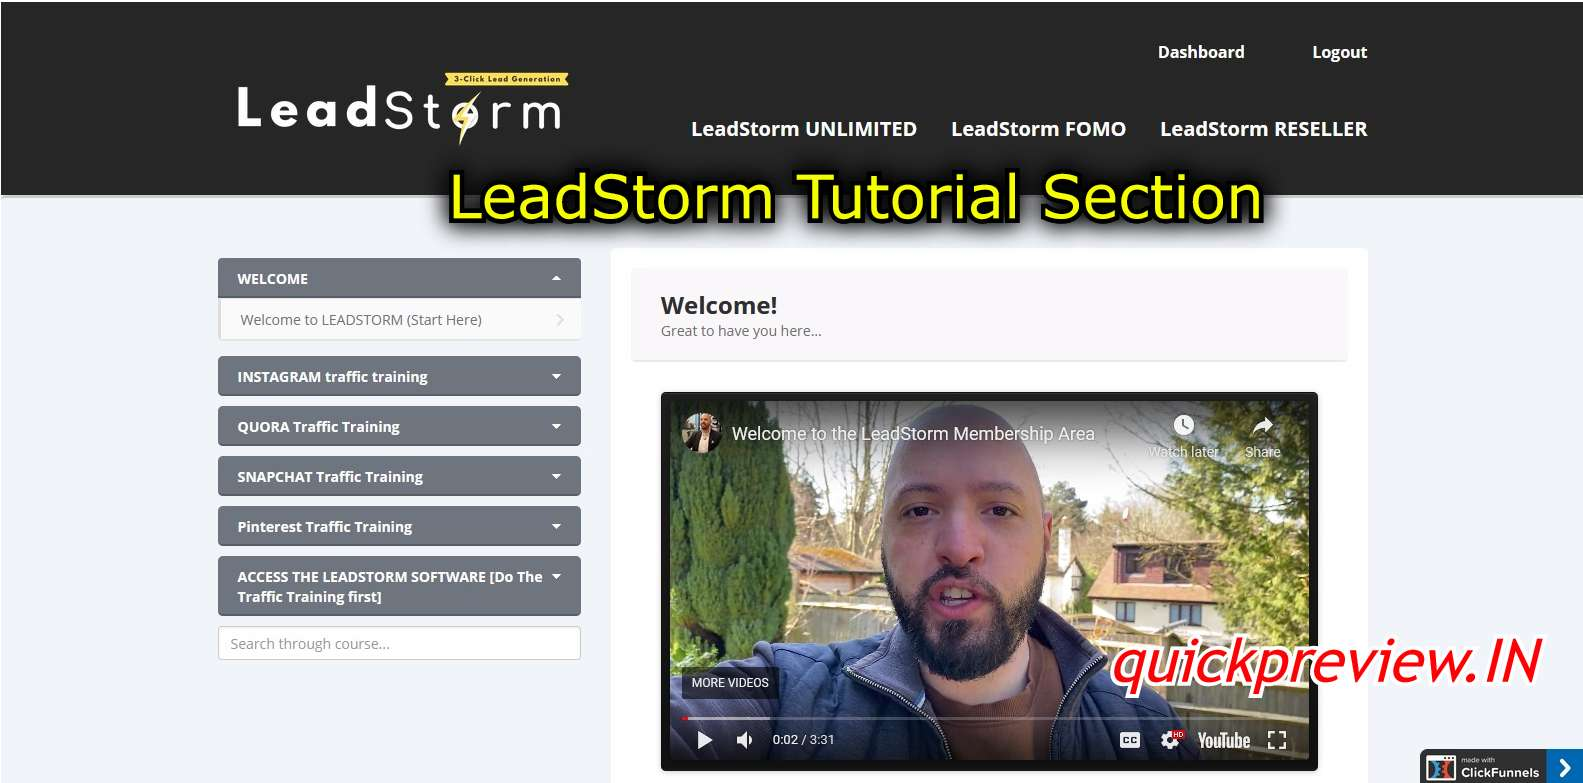 leadstorm tutorial section